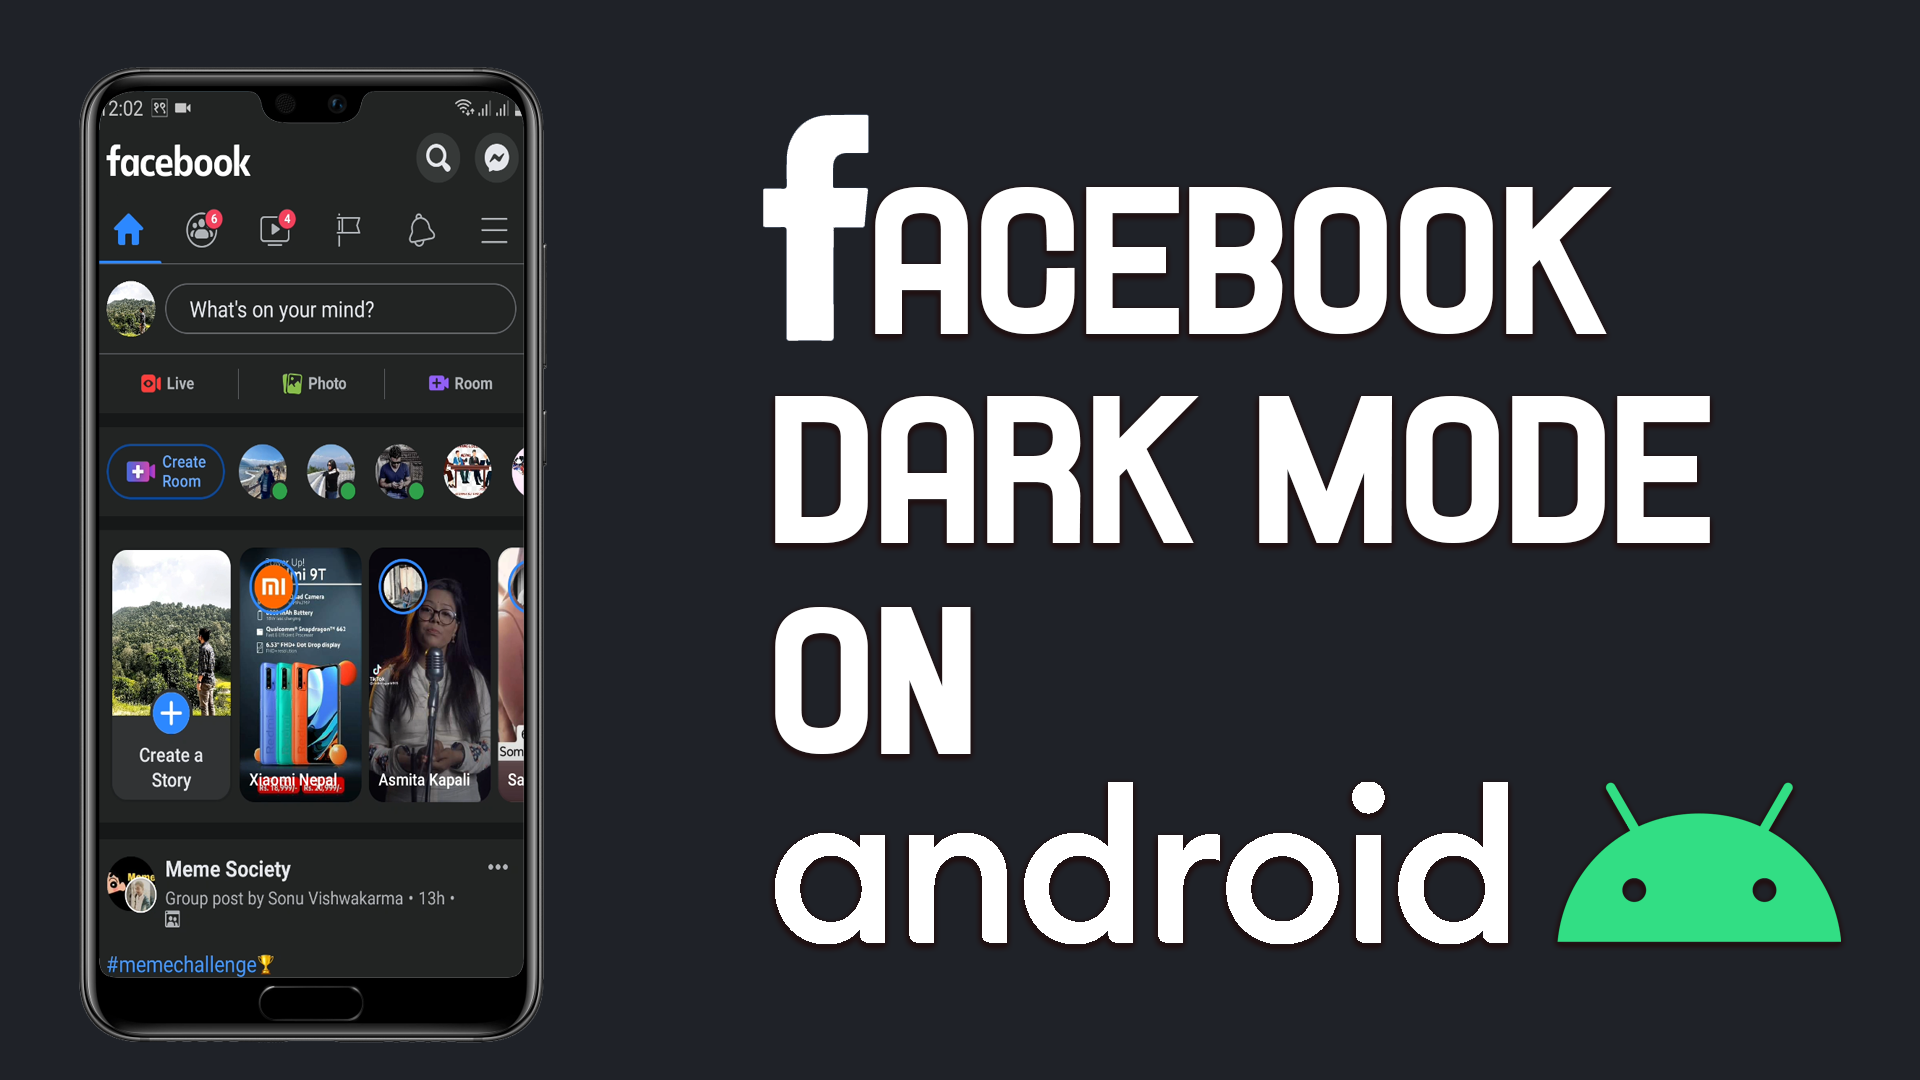 How to enable Dar Mode on Facebook